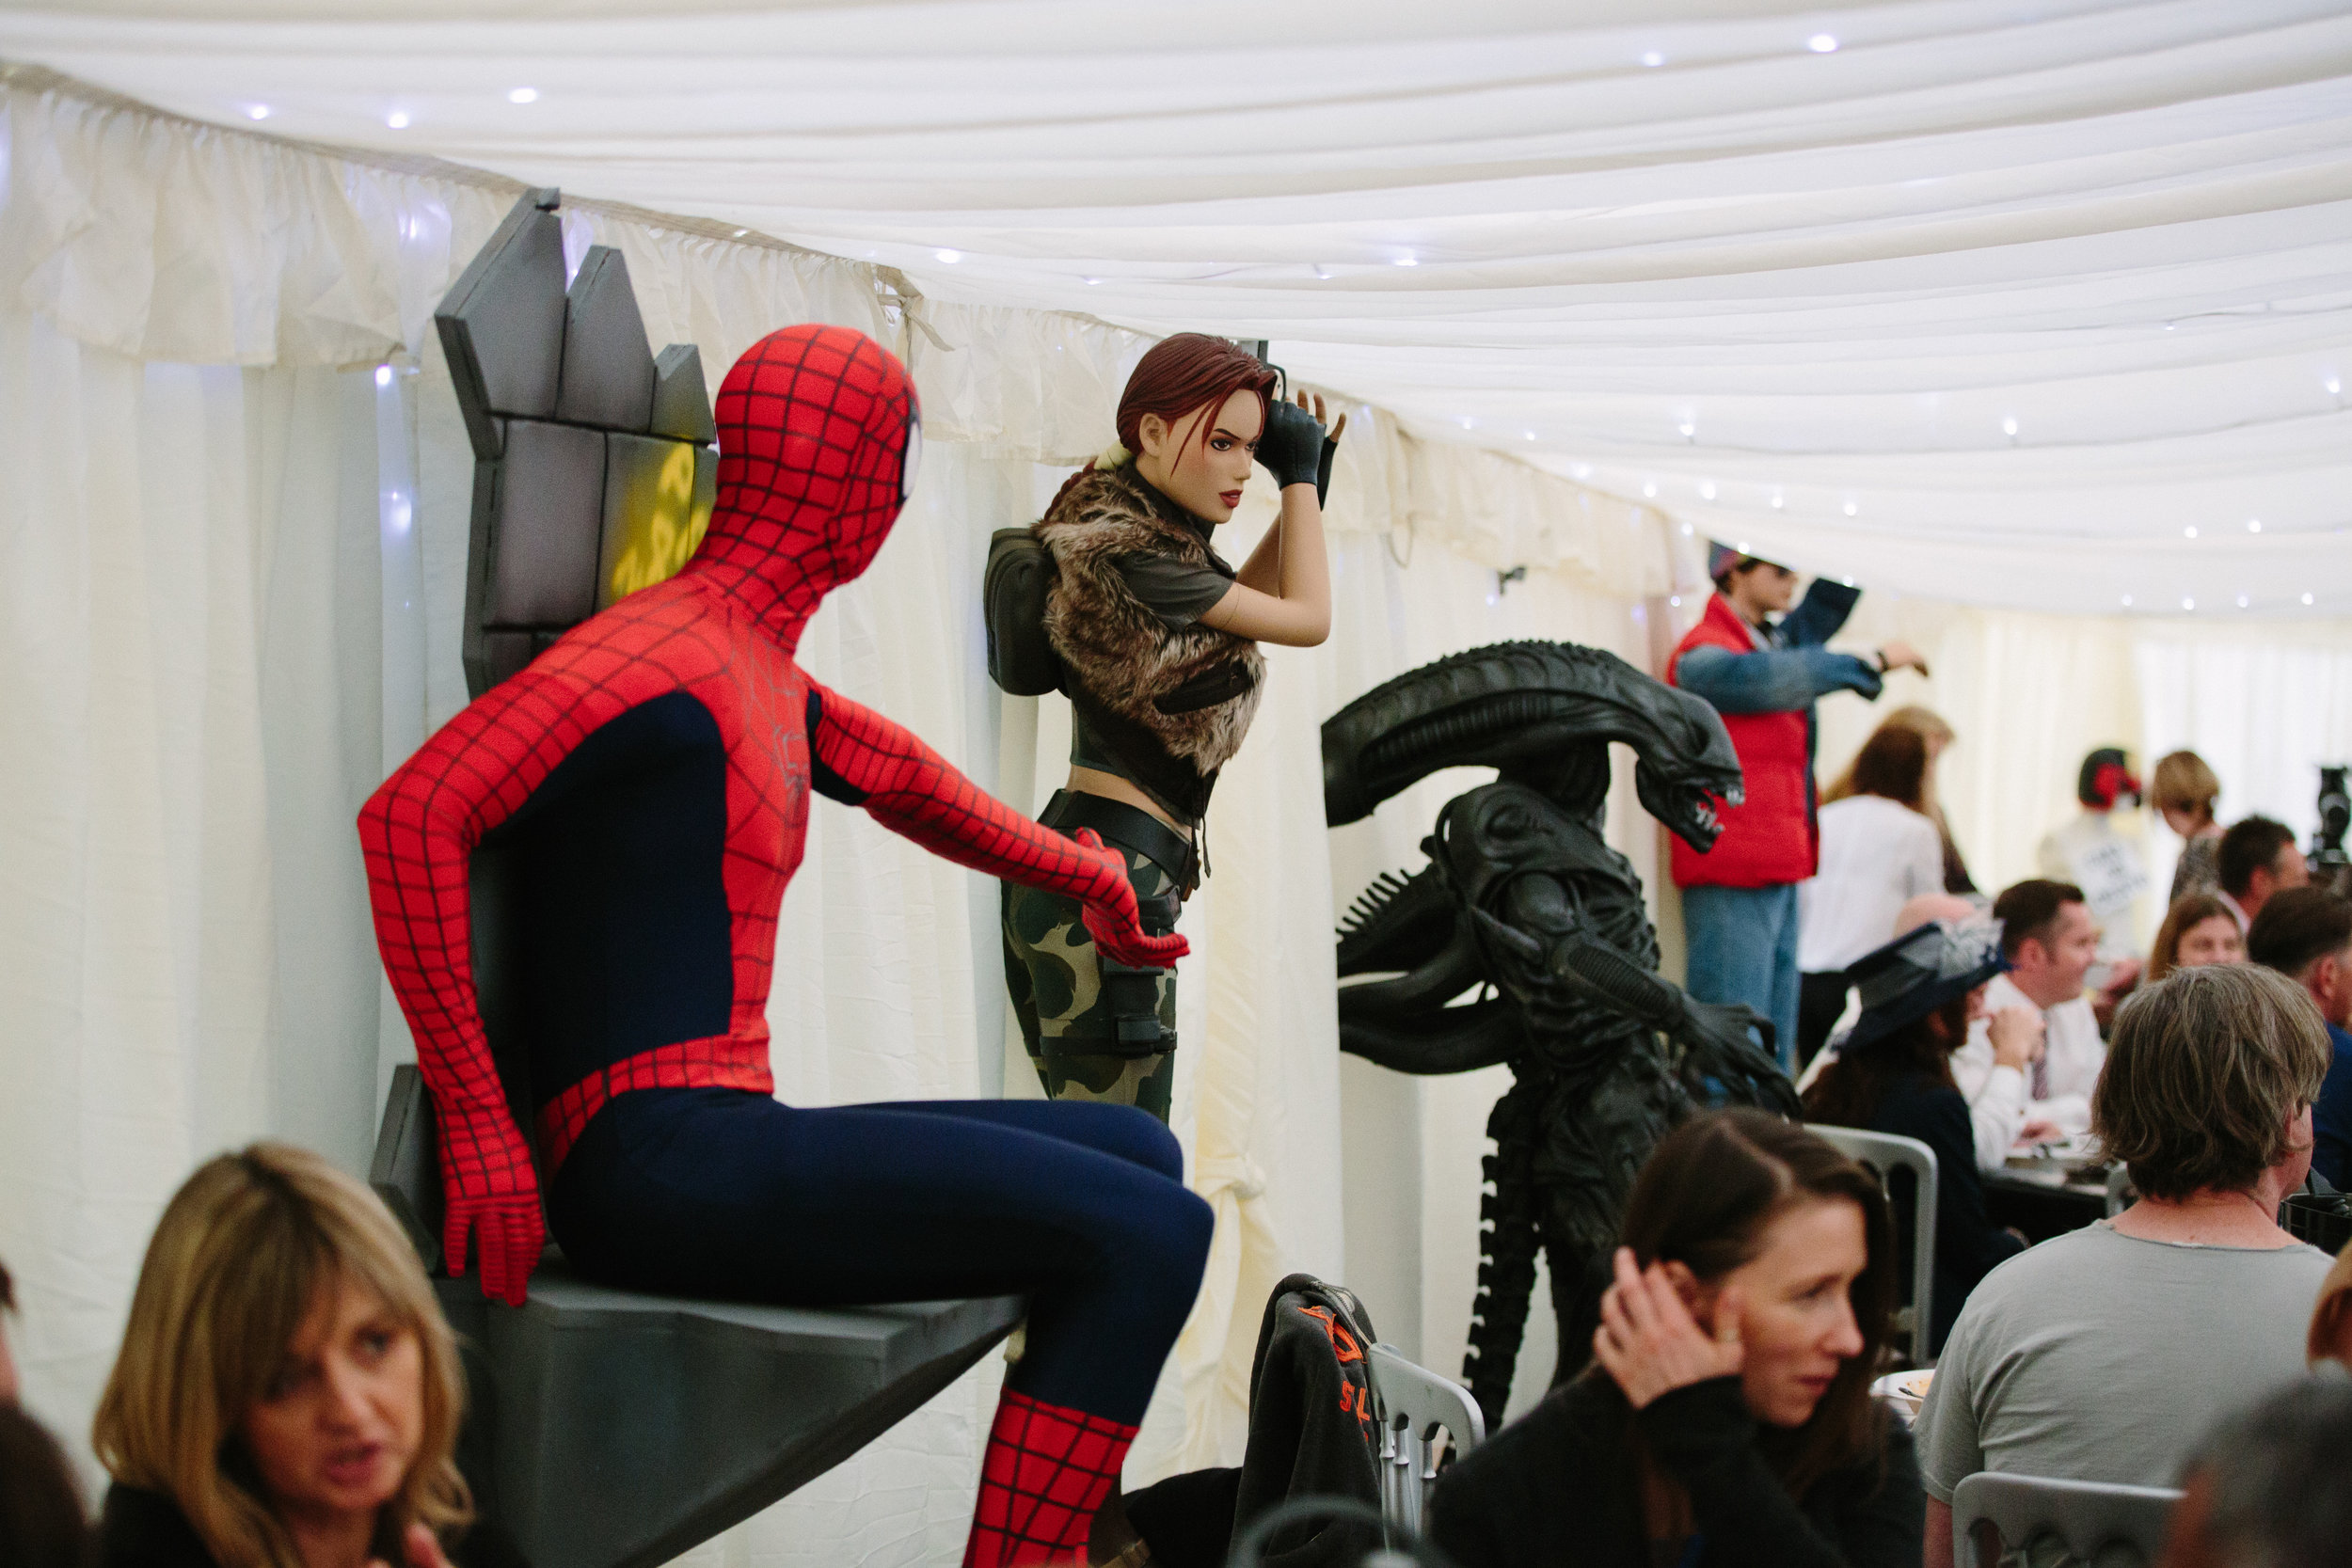 Hollwyood-characters-bride-essex-movie-theme-wedding-spider man-1